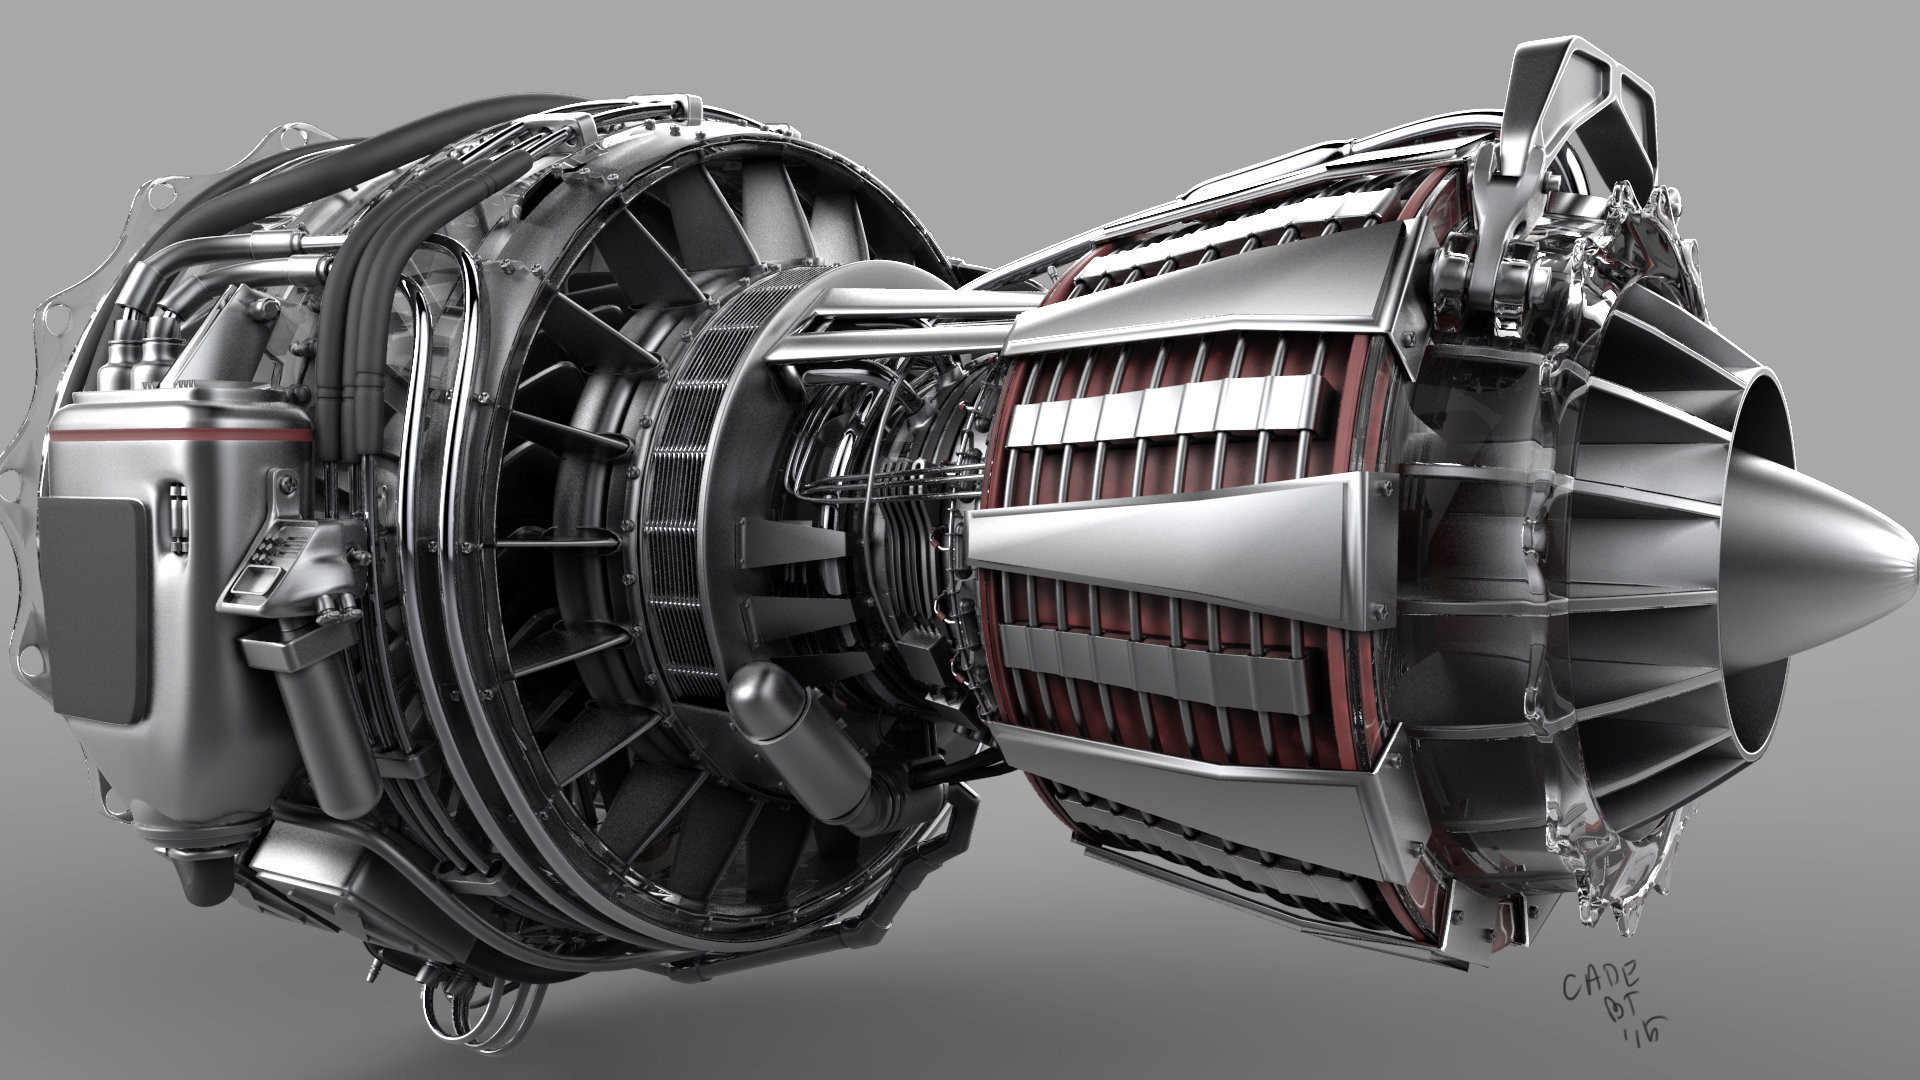 Engines wallpapers 64 background pictures - Jet engine wallpaper ...